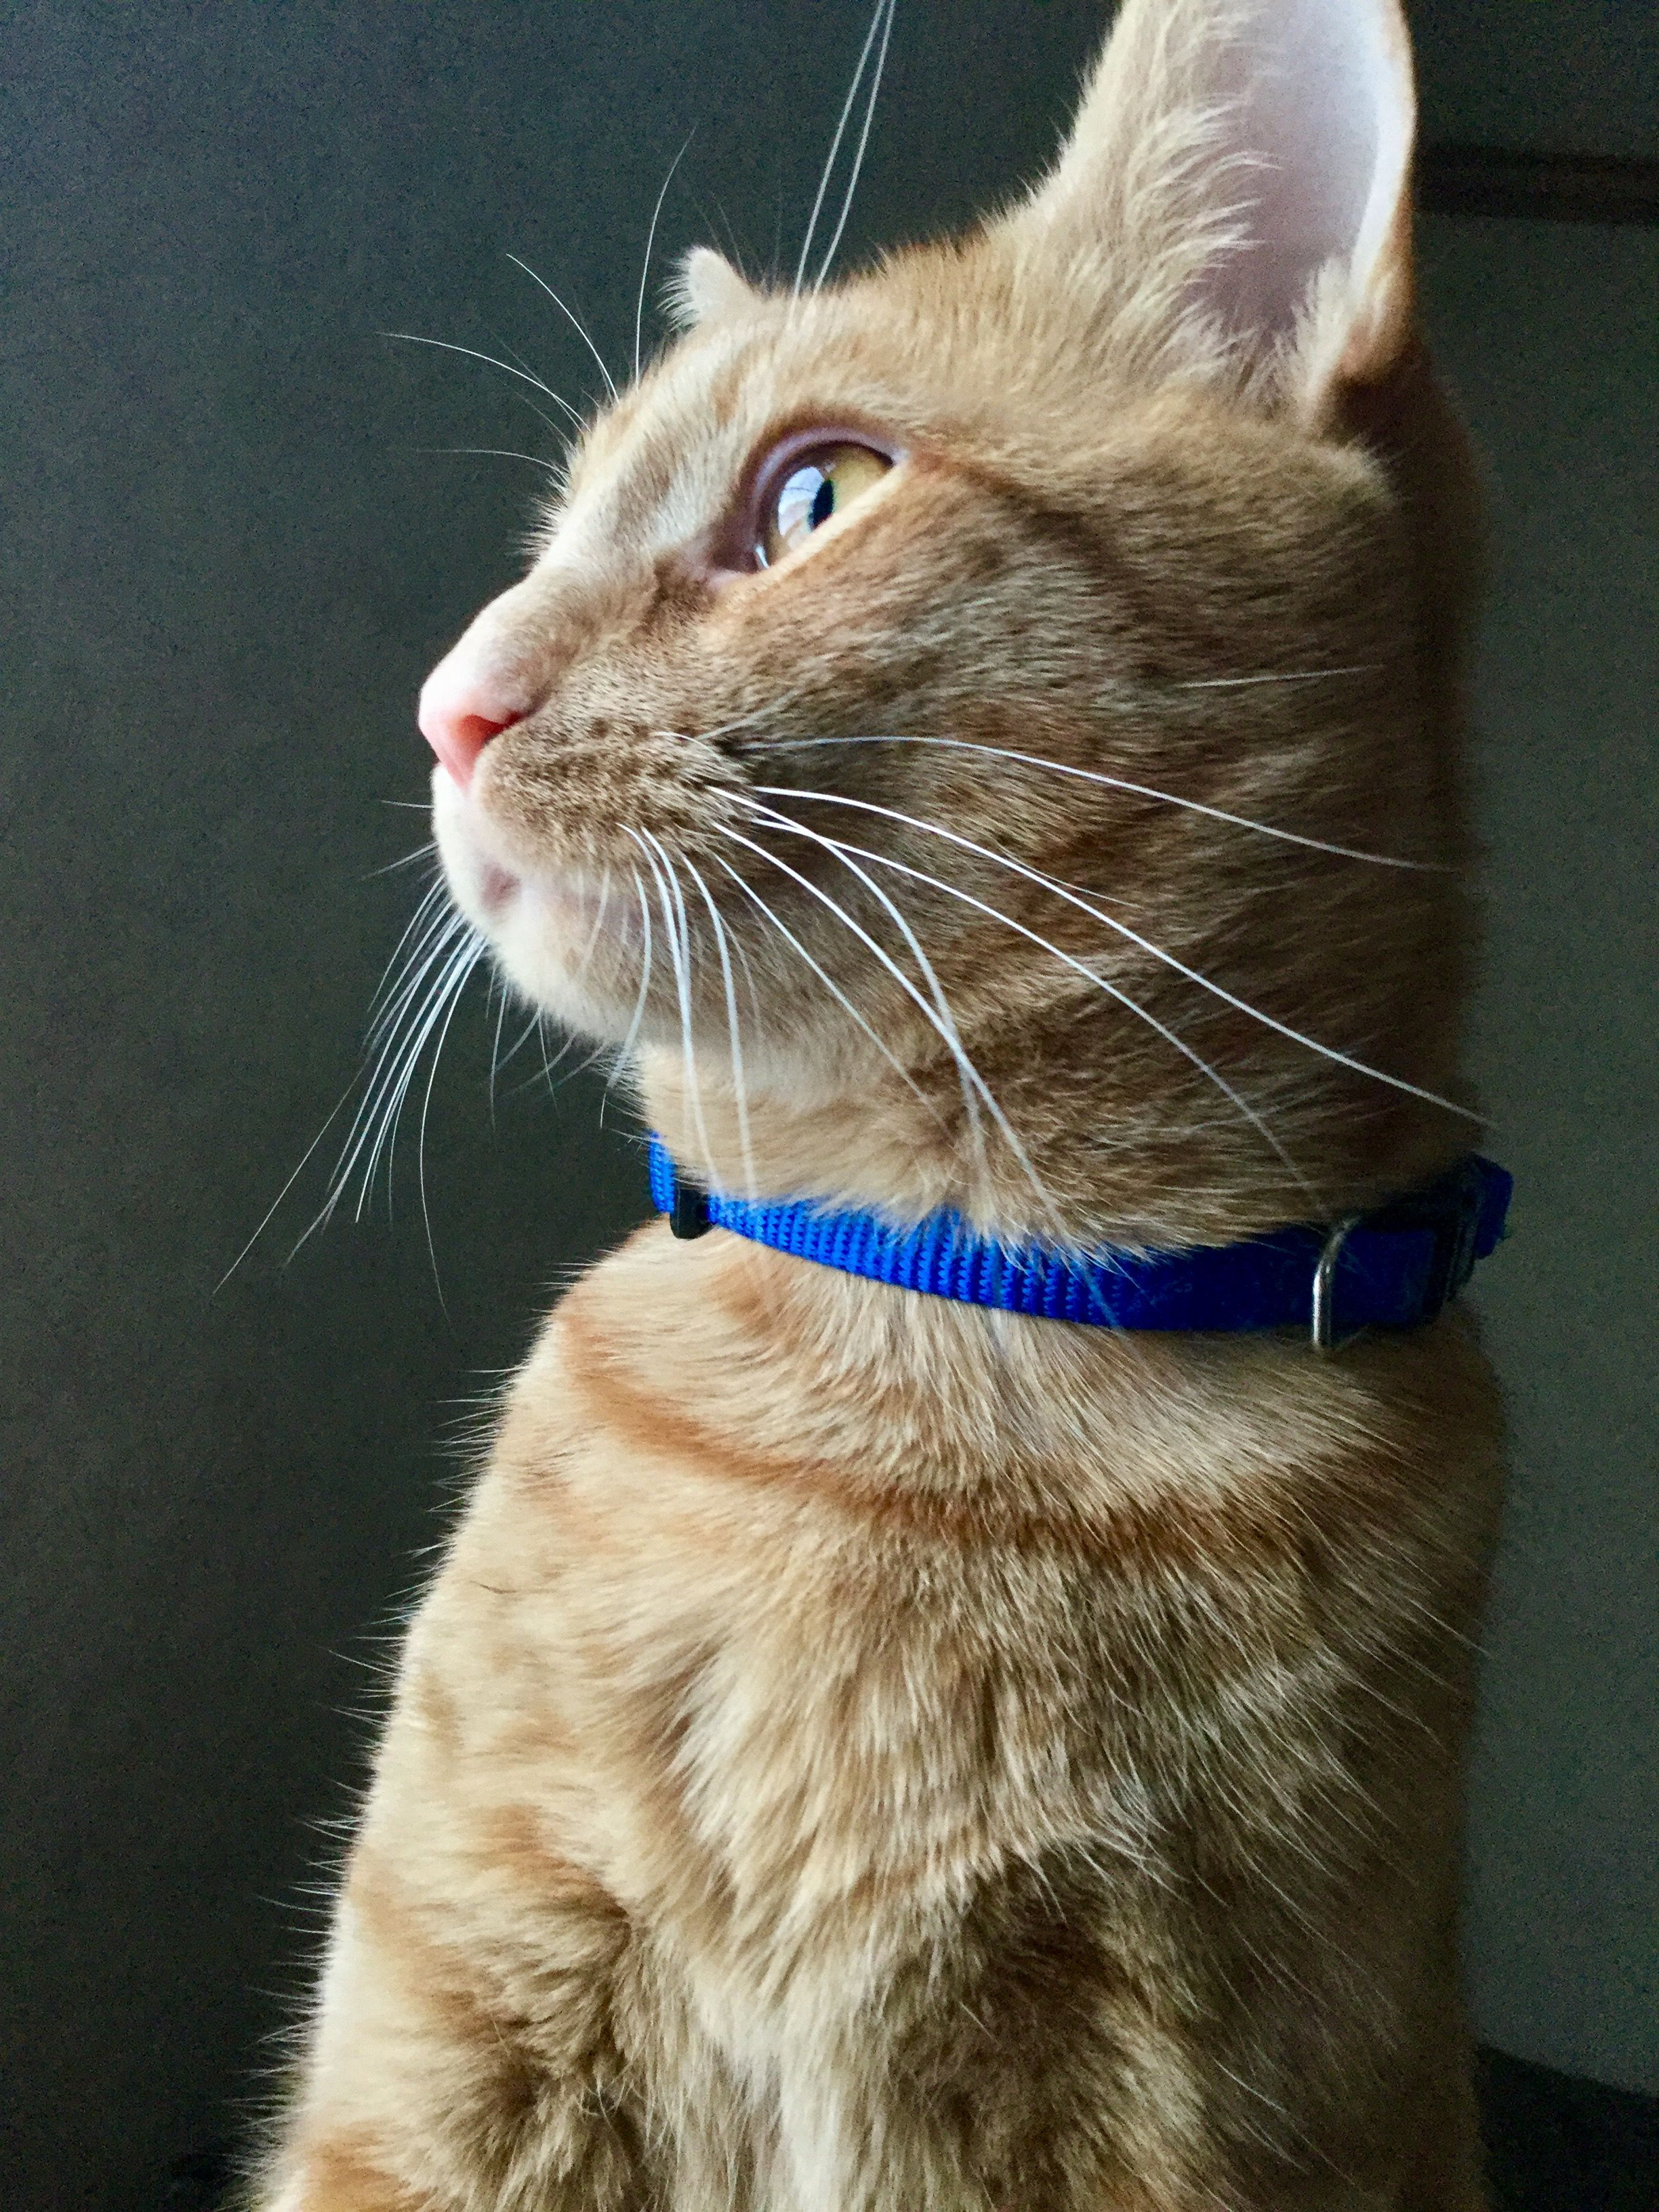 Tormund occasionally stays still long enough for a great picture.   cats funny pictures